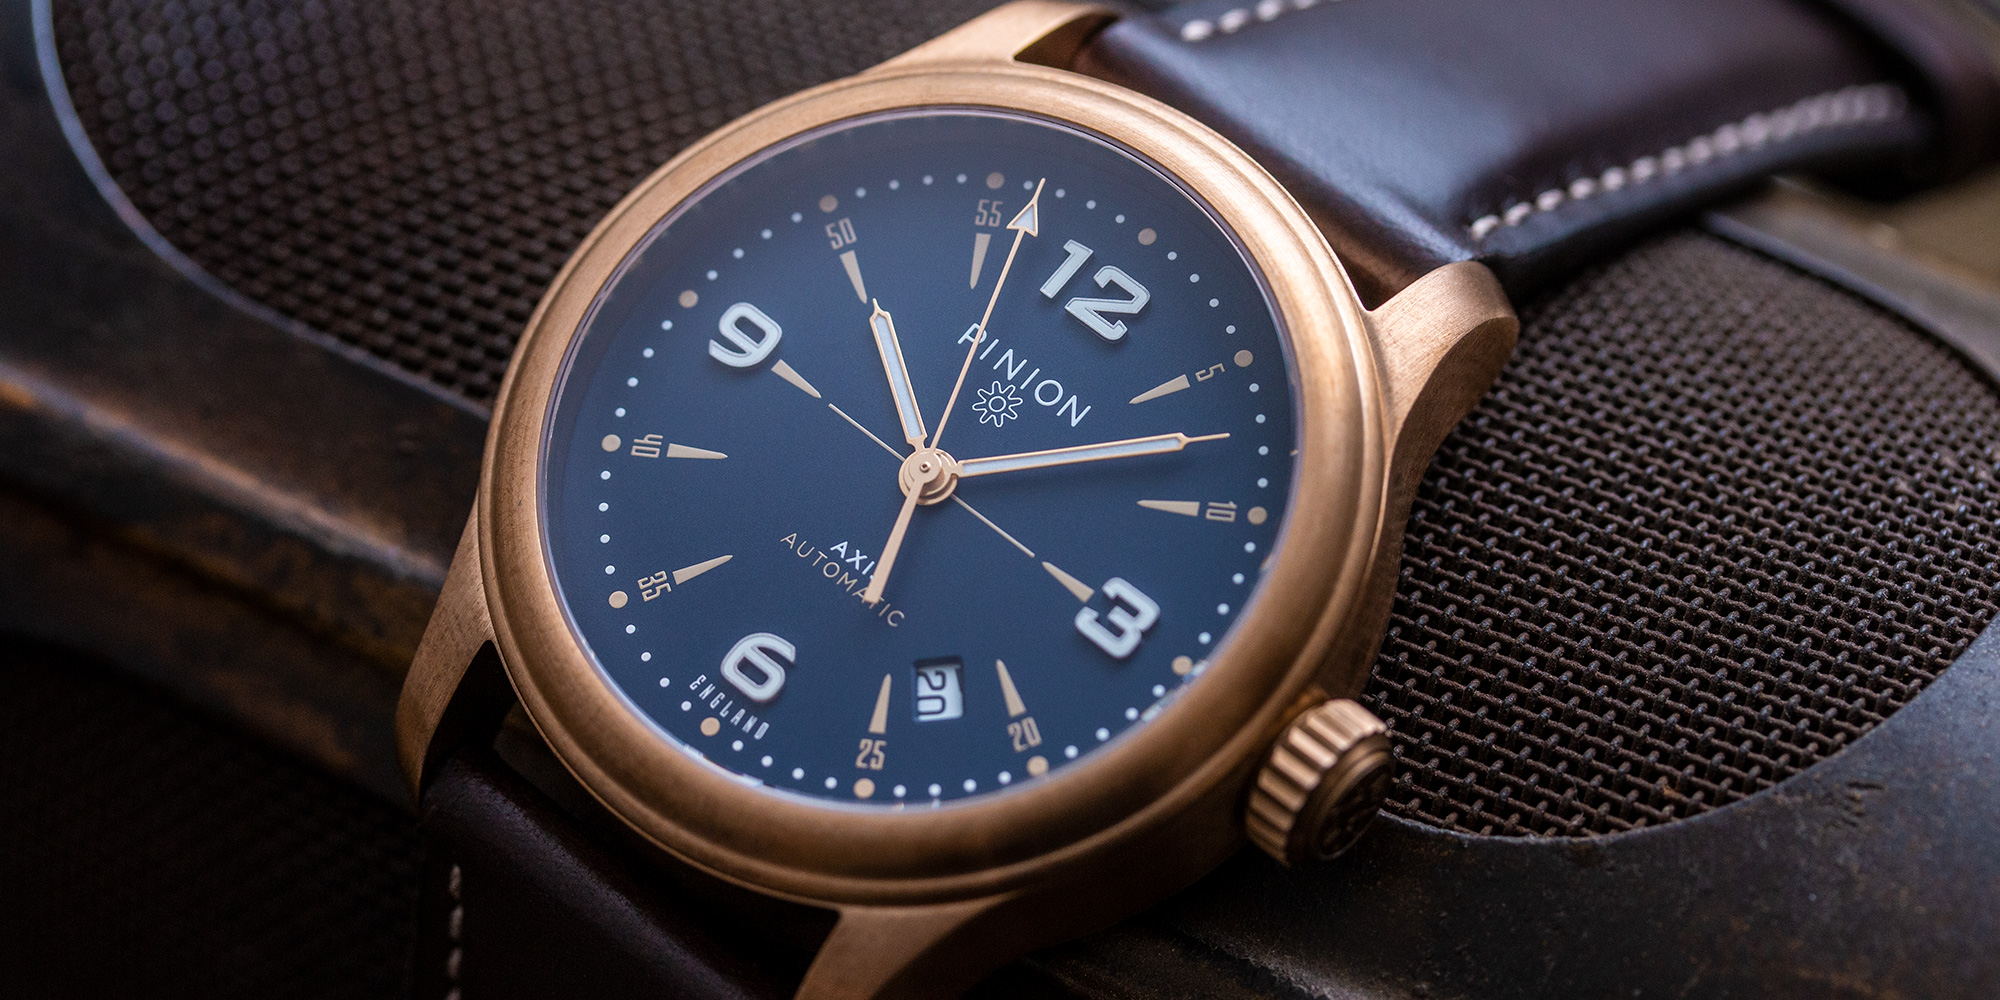 axis-ii-bronze-watch-blue-dial-002